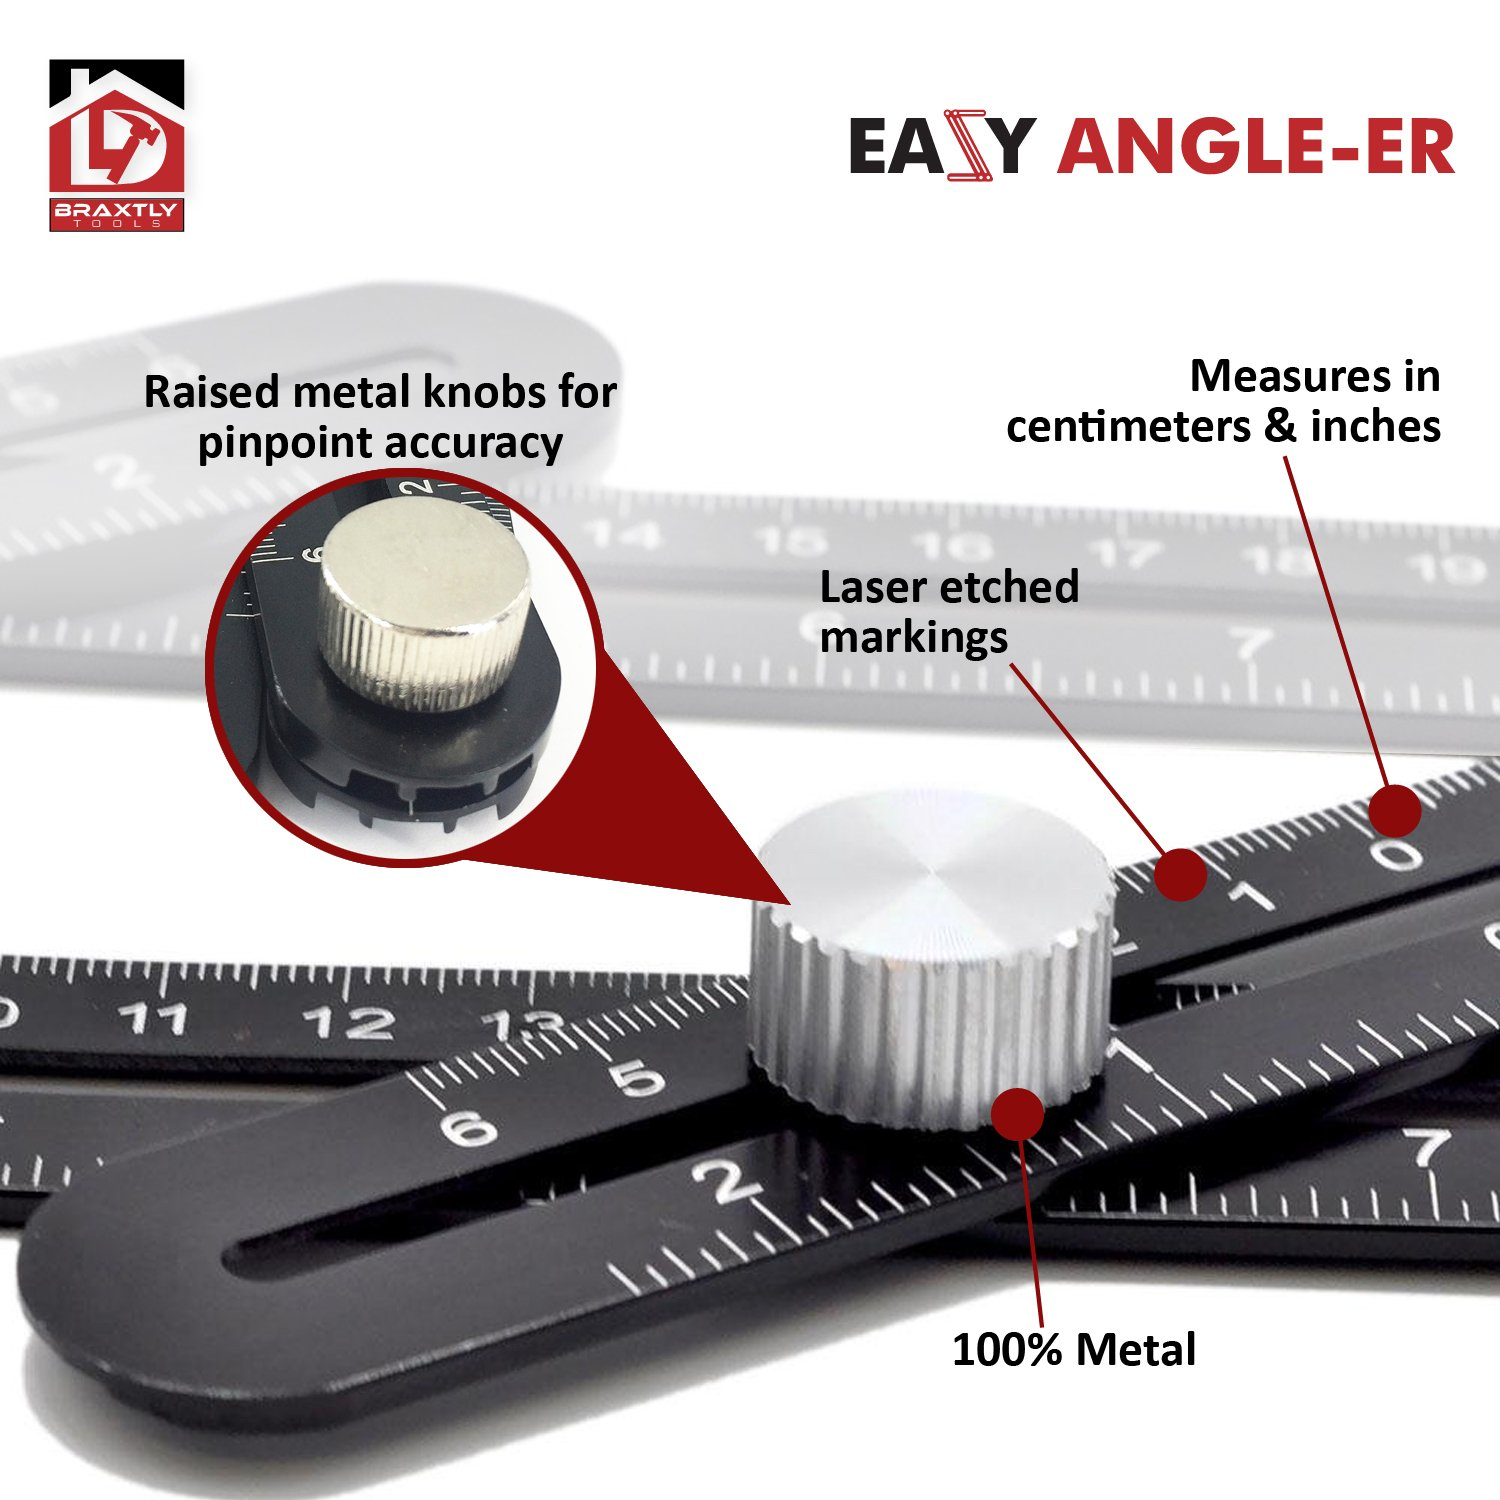 Braxtly Tools EASY ANGLE-ER HEAVY DUTY Template Tool - Ultimate Multi Angle Ruler - For Measuring Angles - Made of Premium Metal Alloy- Adjustable Knobs for Precise Measurement- w/Instruction Manual by Braxtly Tools (Image #3)